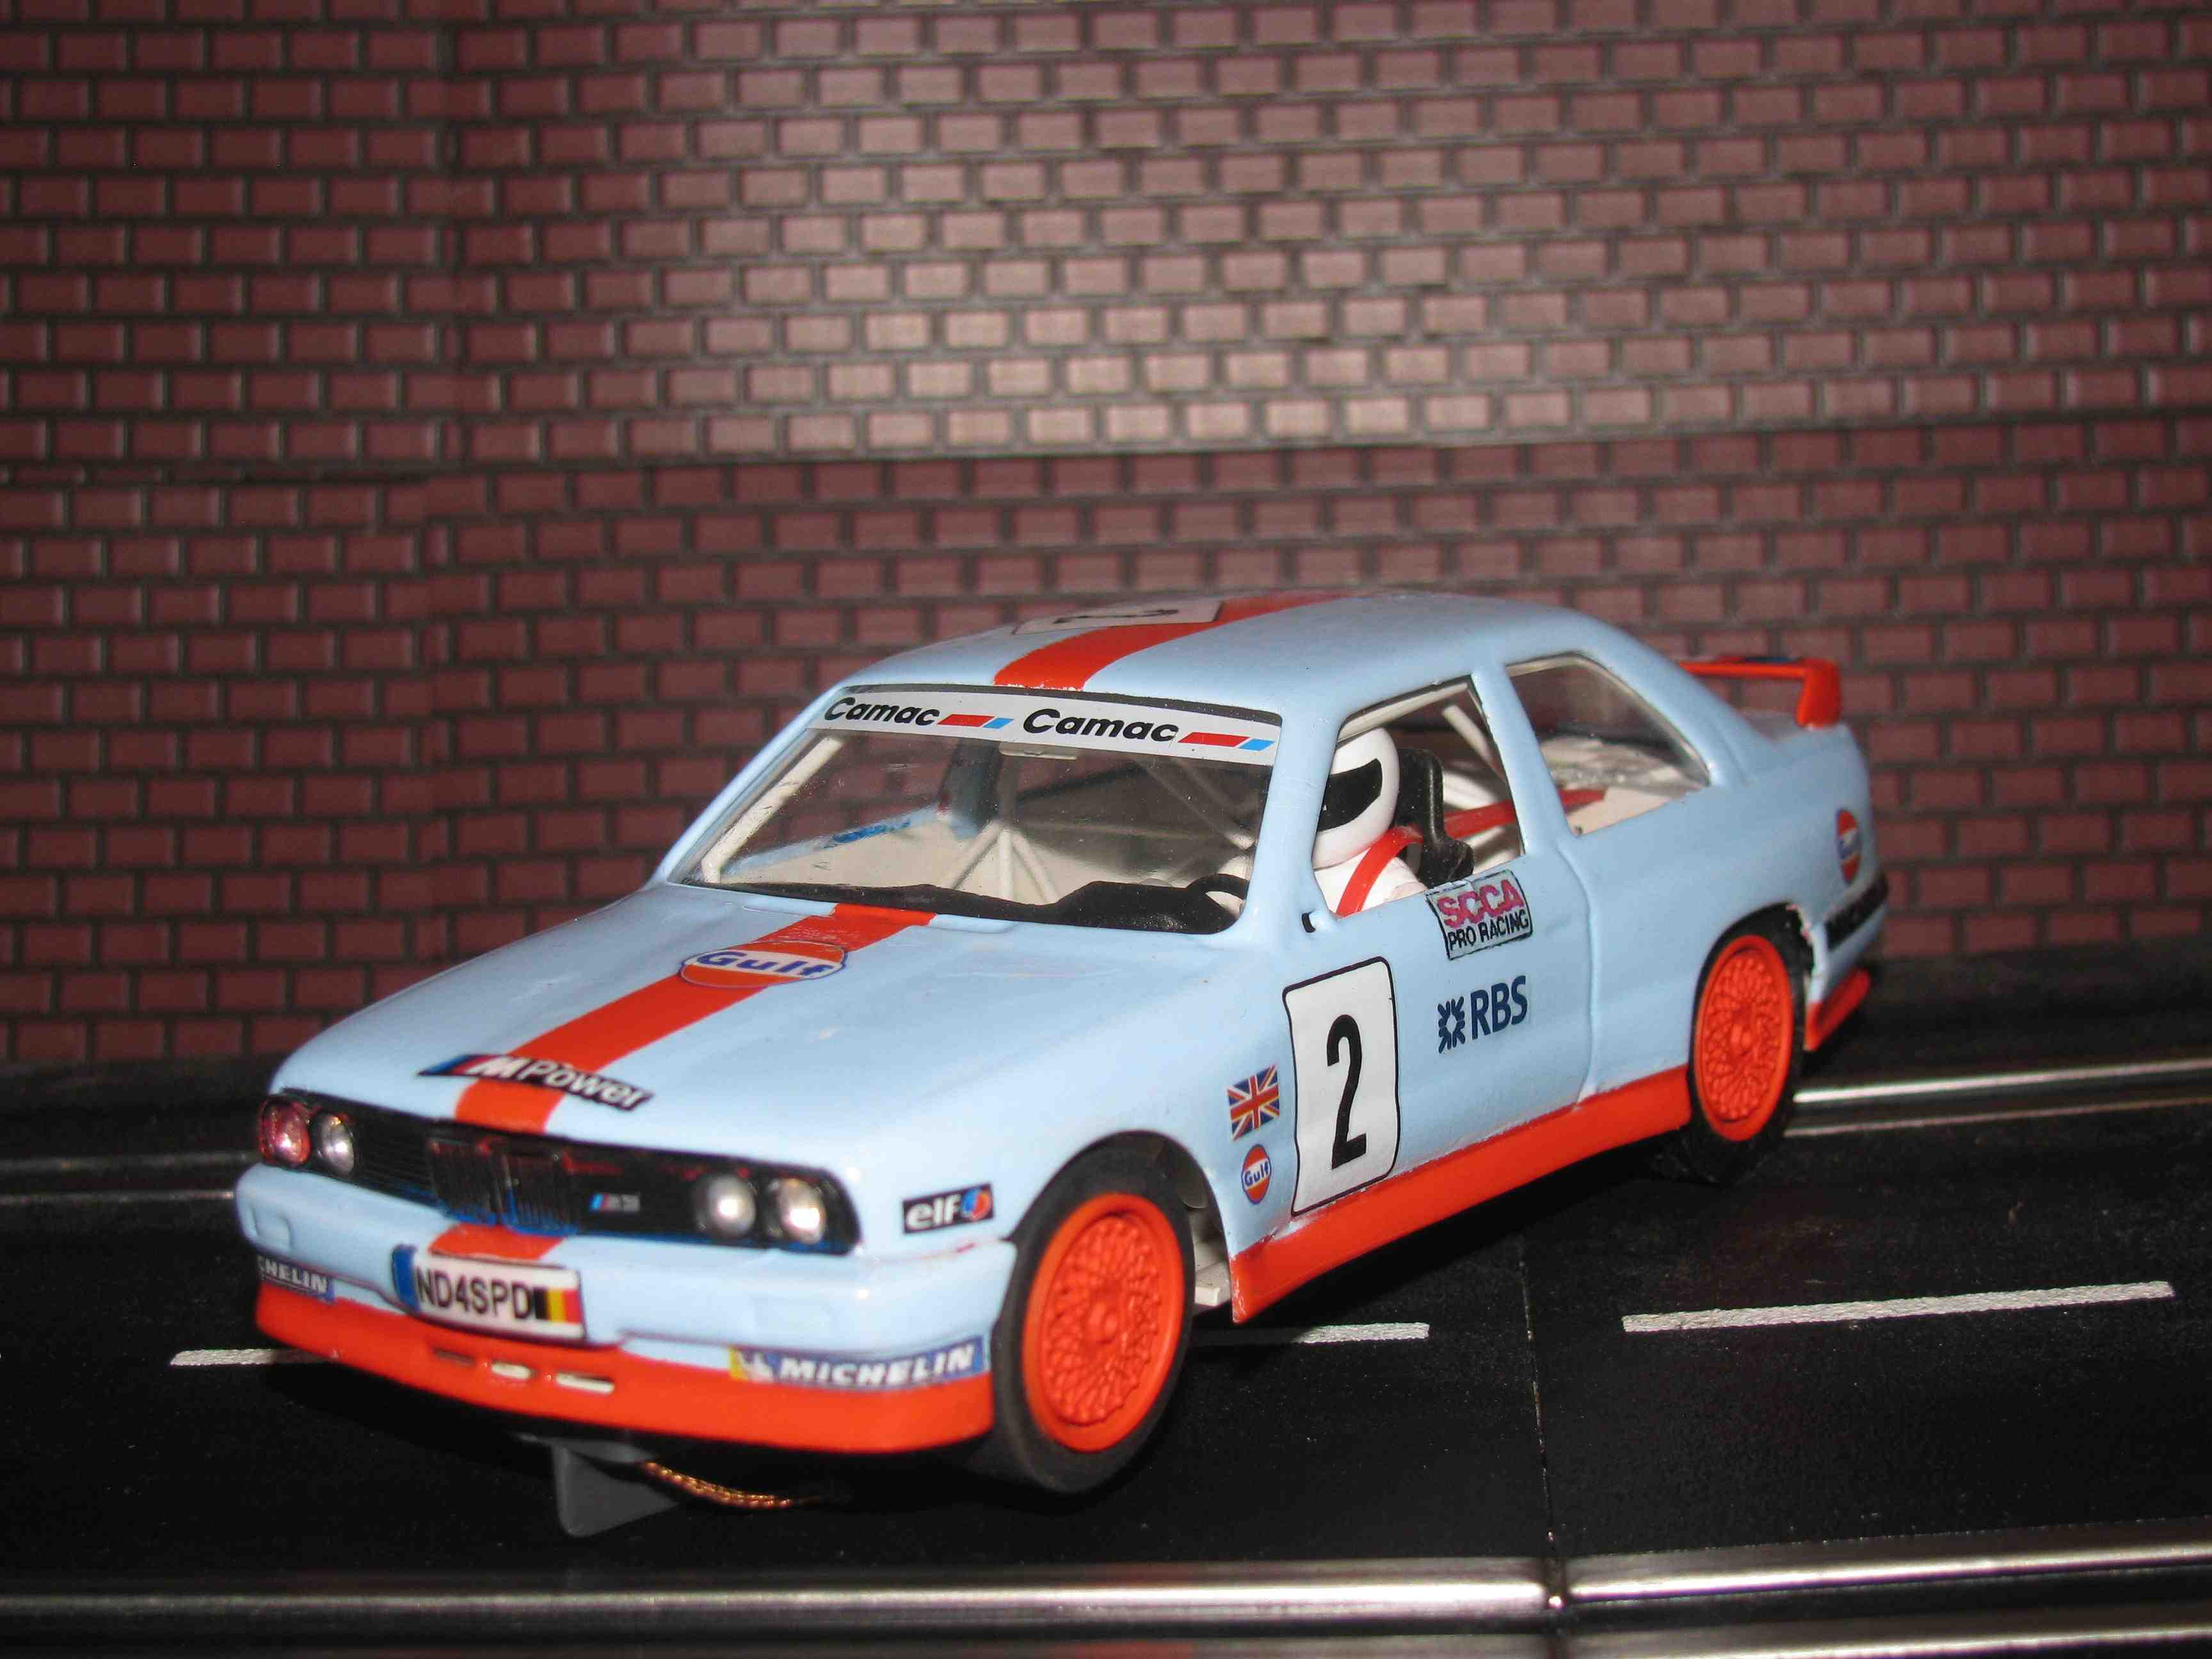 *** SOLD *** Fly BMW M3 E30 MPower Gulf Racing Slot Car 1/32 Made in Spain - Runs Great